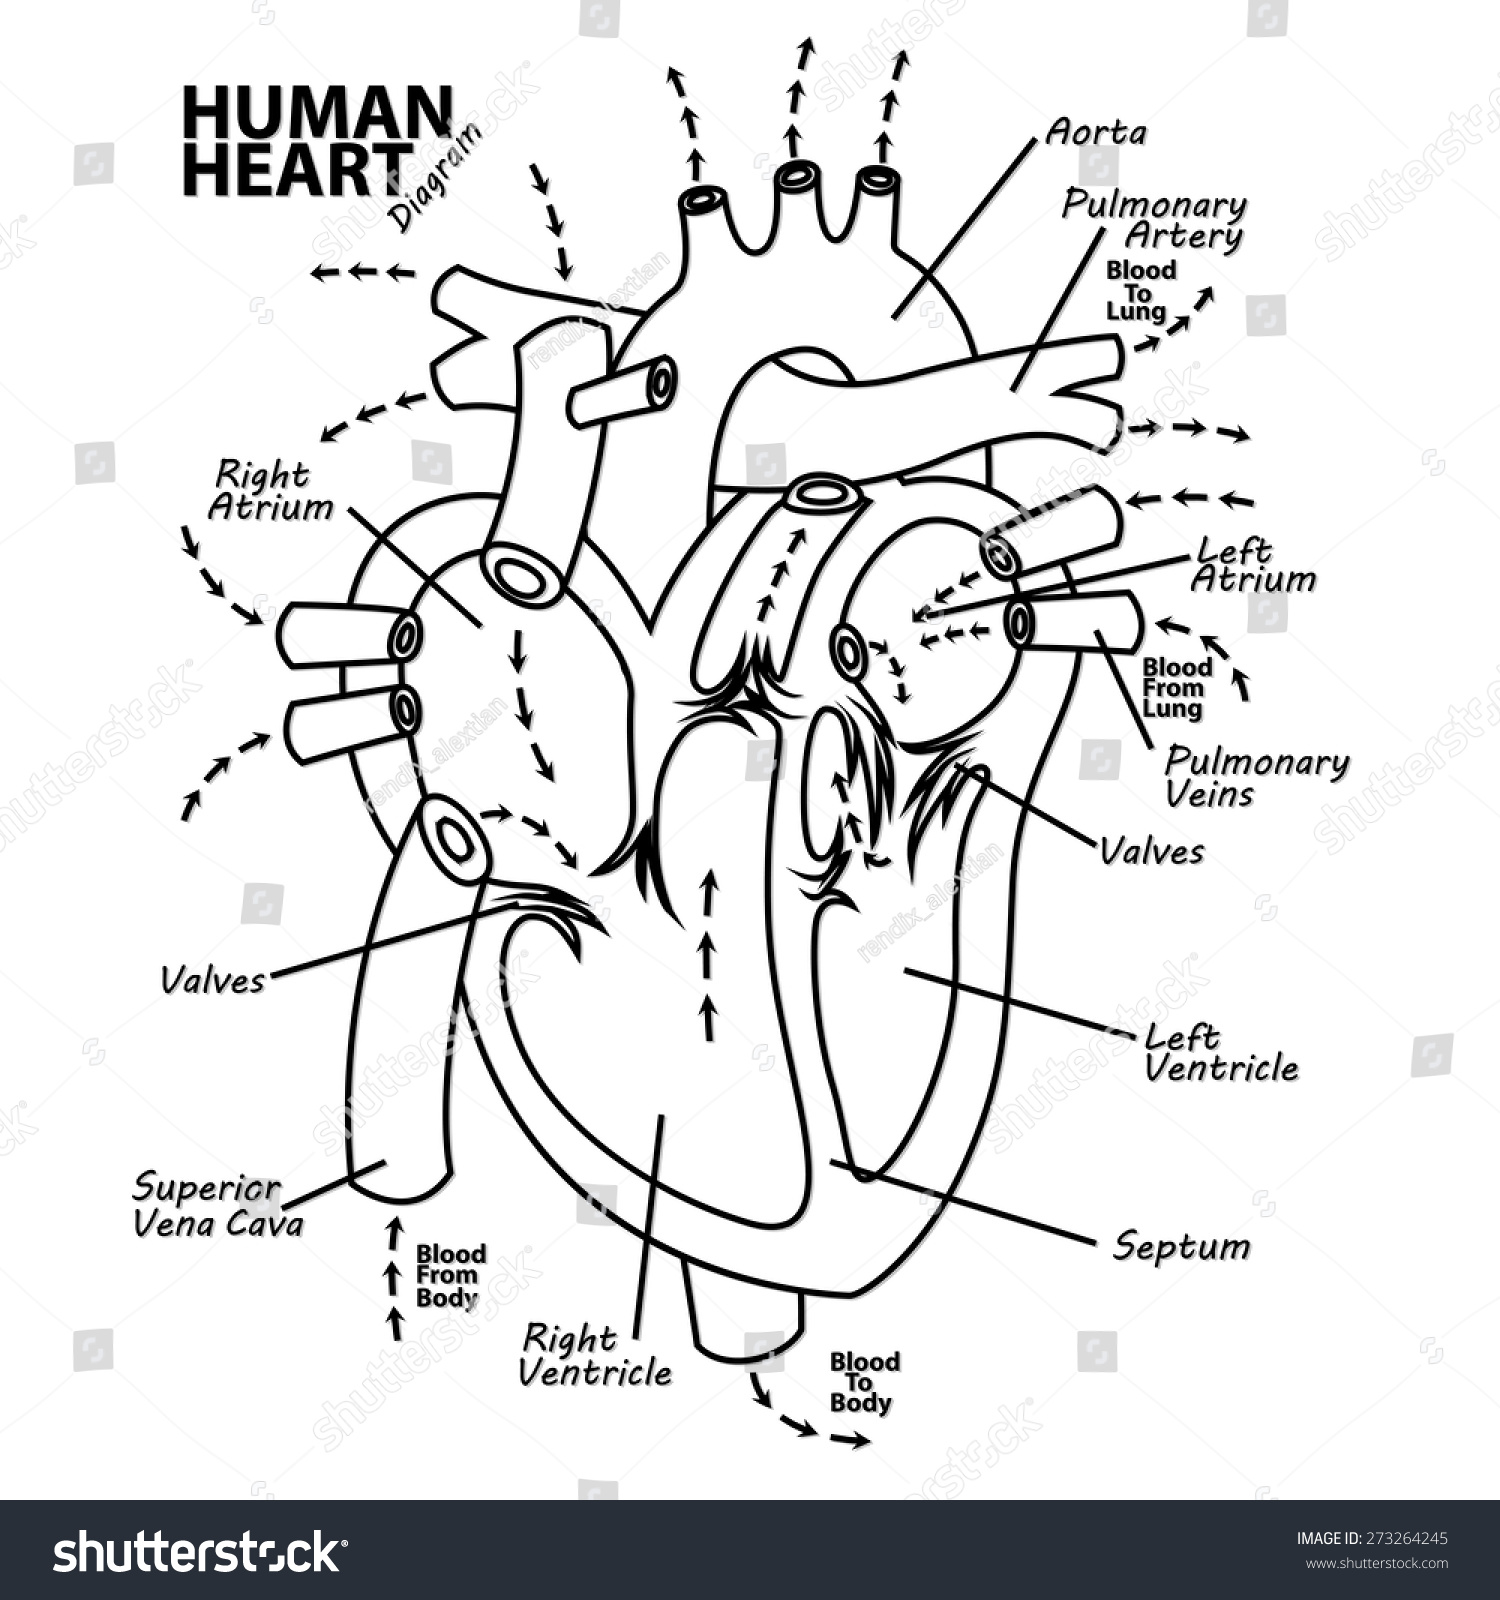 human heart diagram anatomy stock vector 273264245 - shutterstock, Muscles